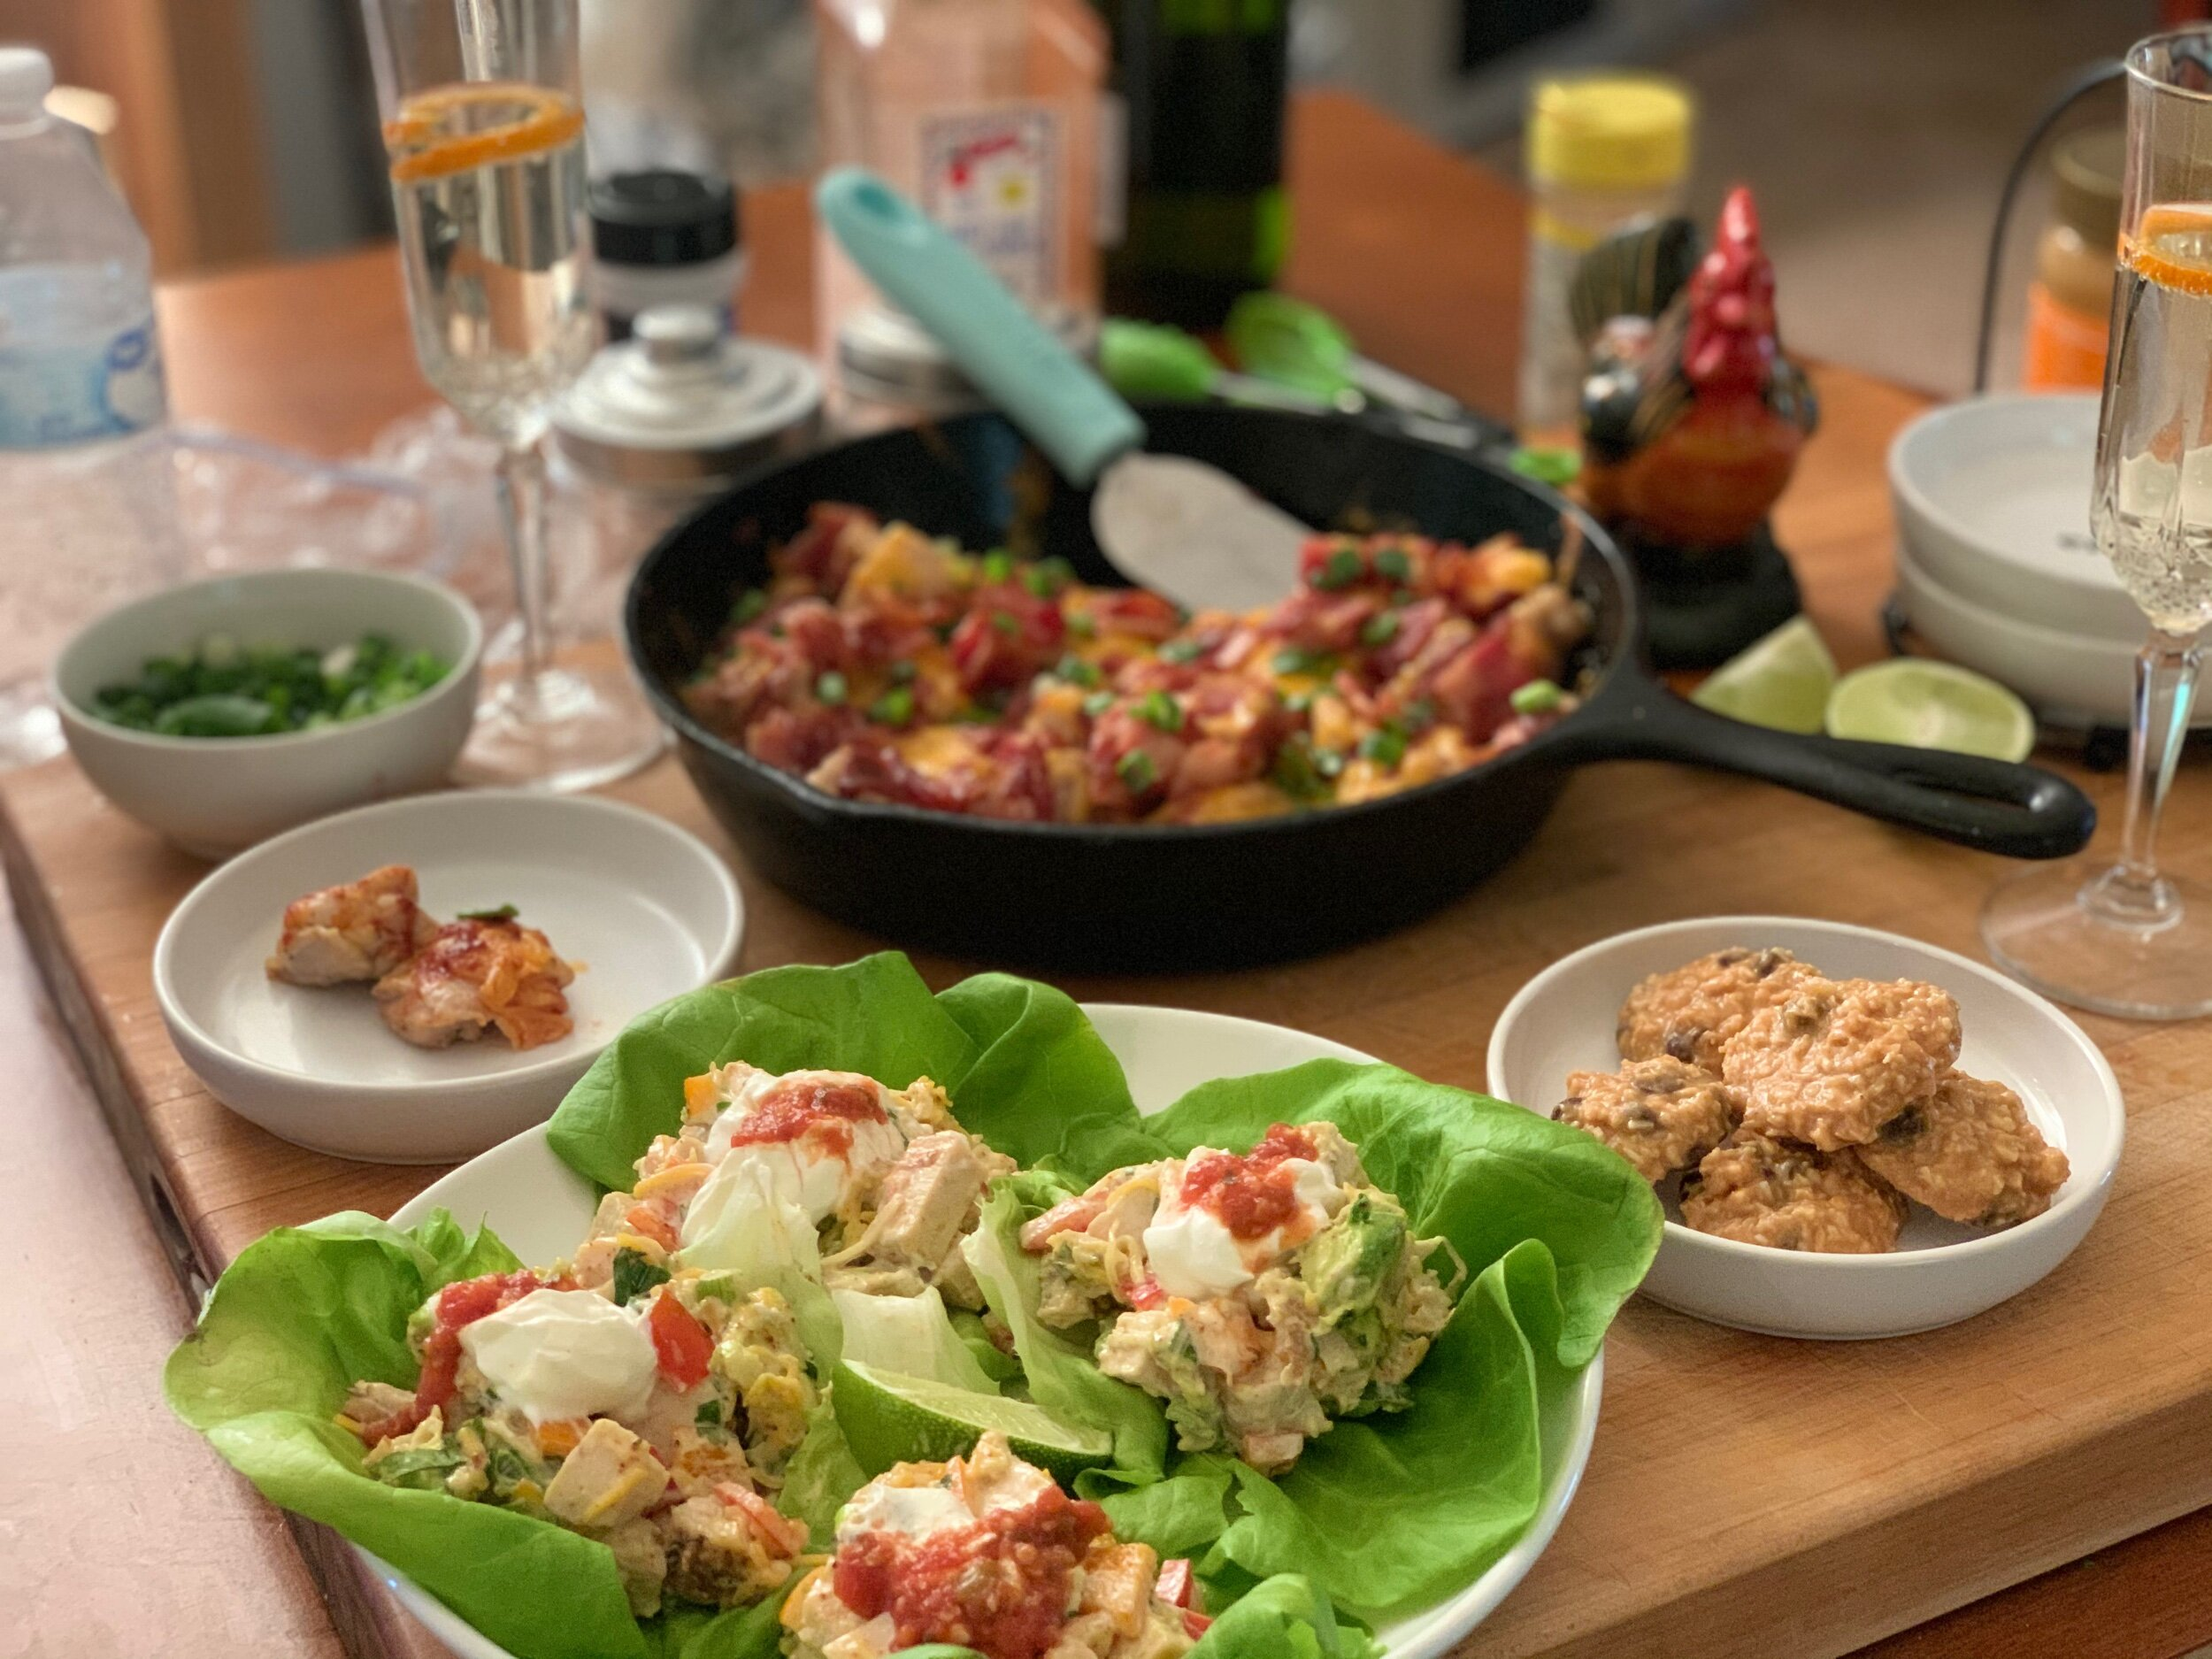 Serve in lettuce cups and enjoy!